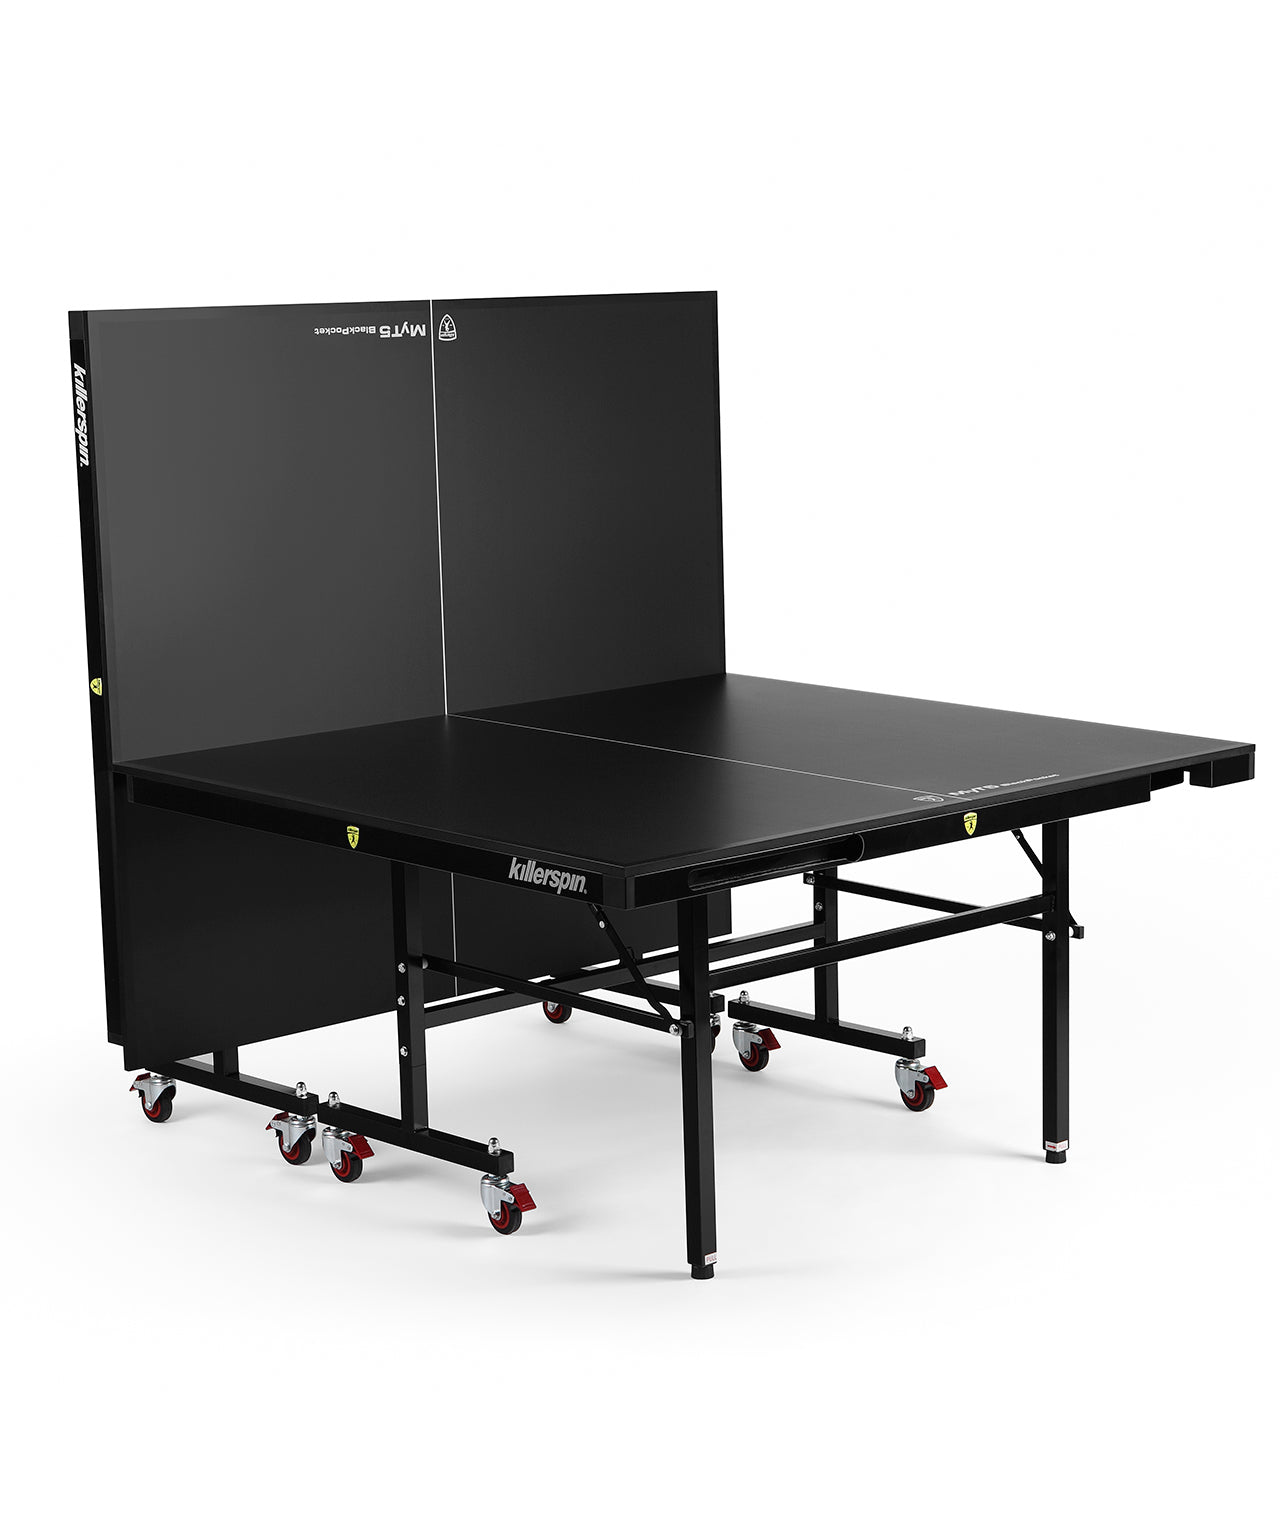 Killerspin MyT Ping Pong Table MyT5 Black Pocket - Playback Mode